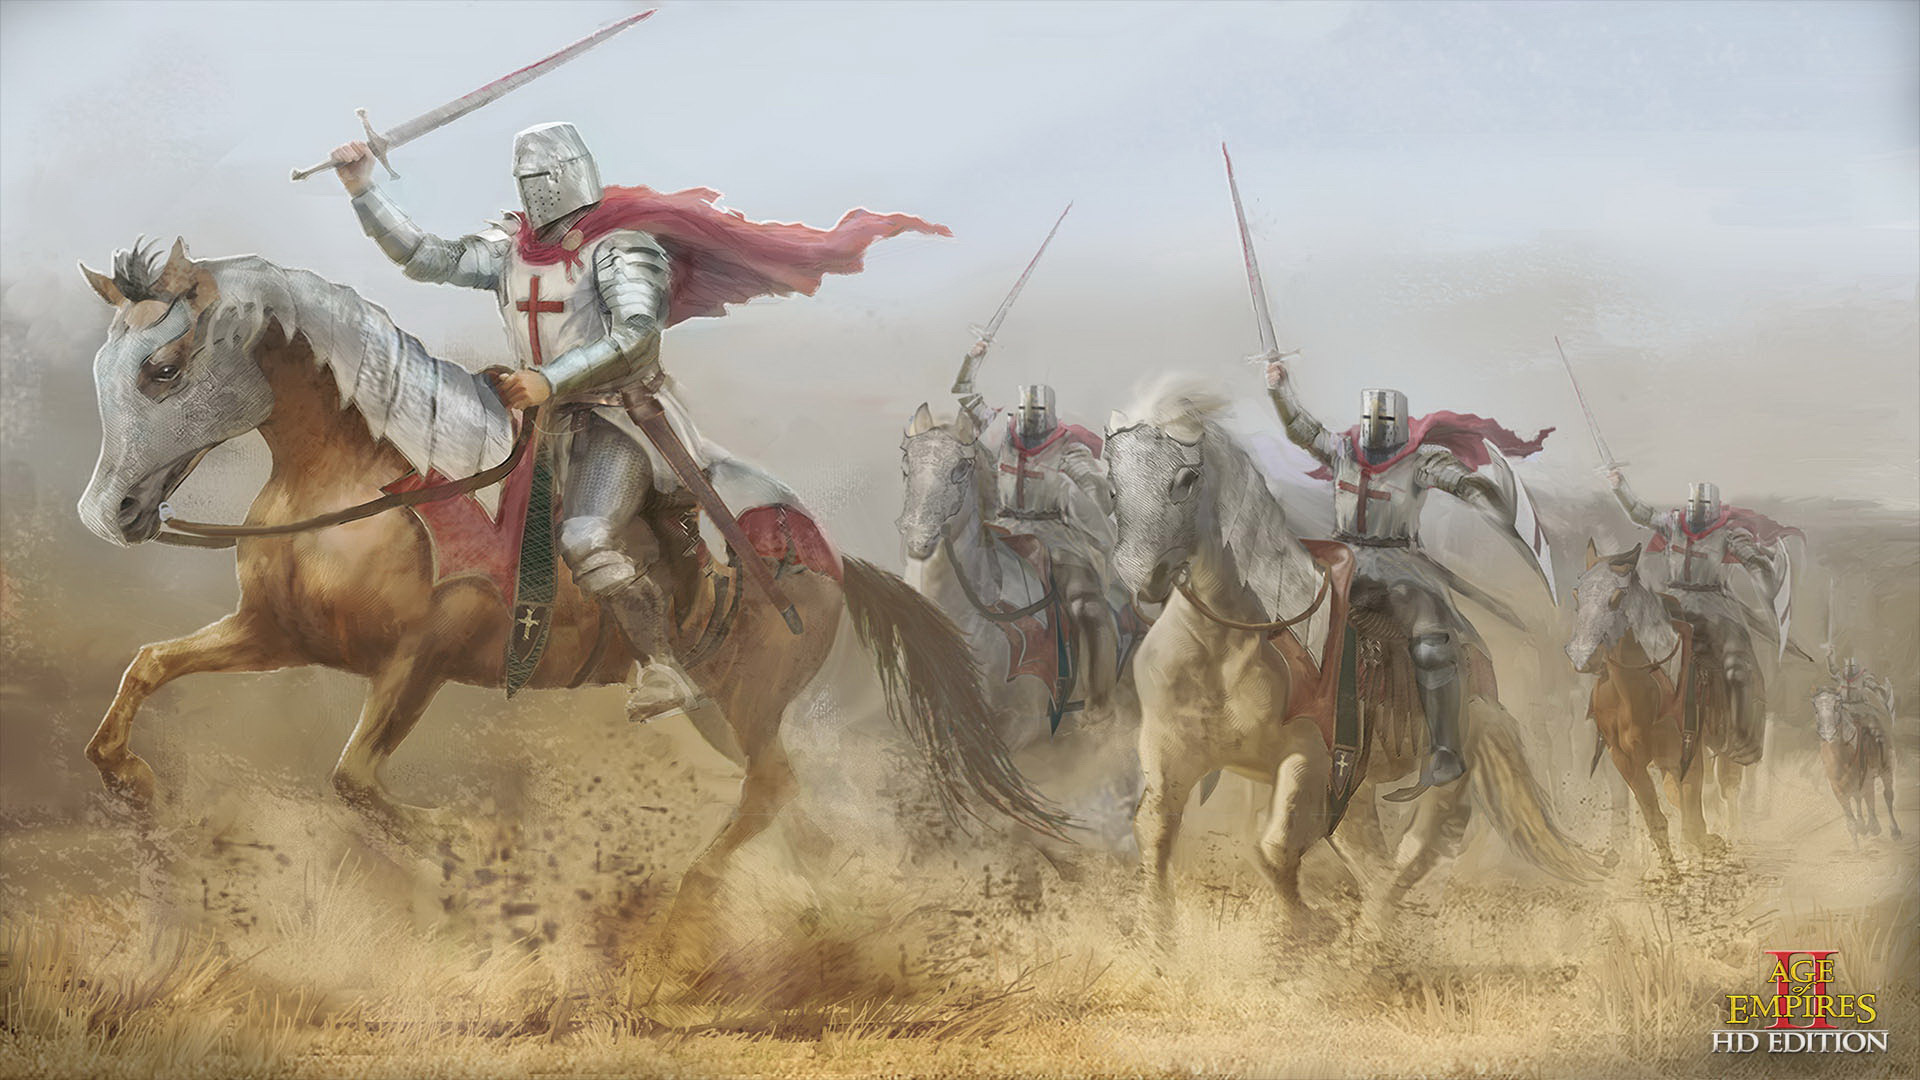 Free Age of Empires II Wallpaper in 1920x1080